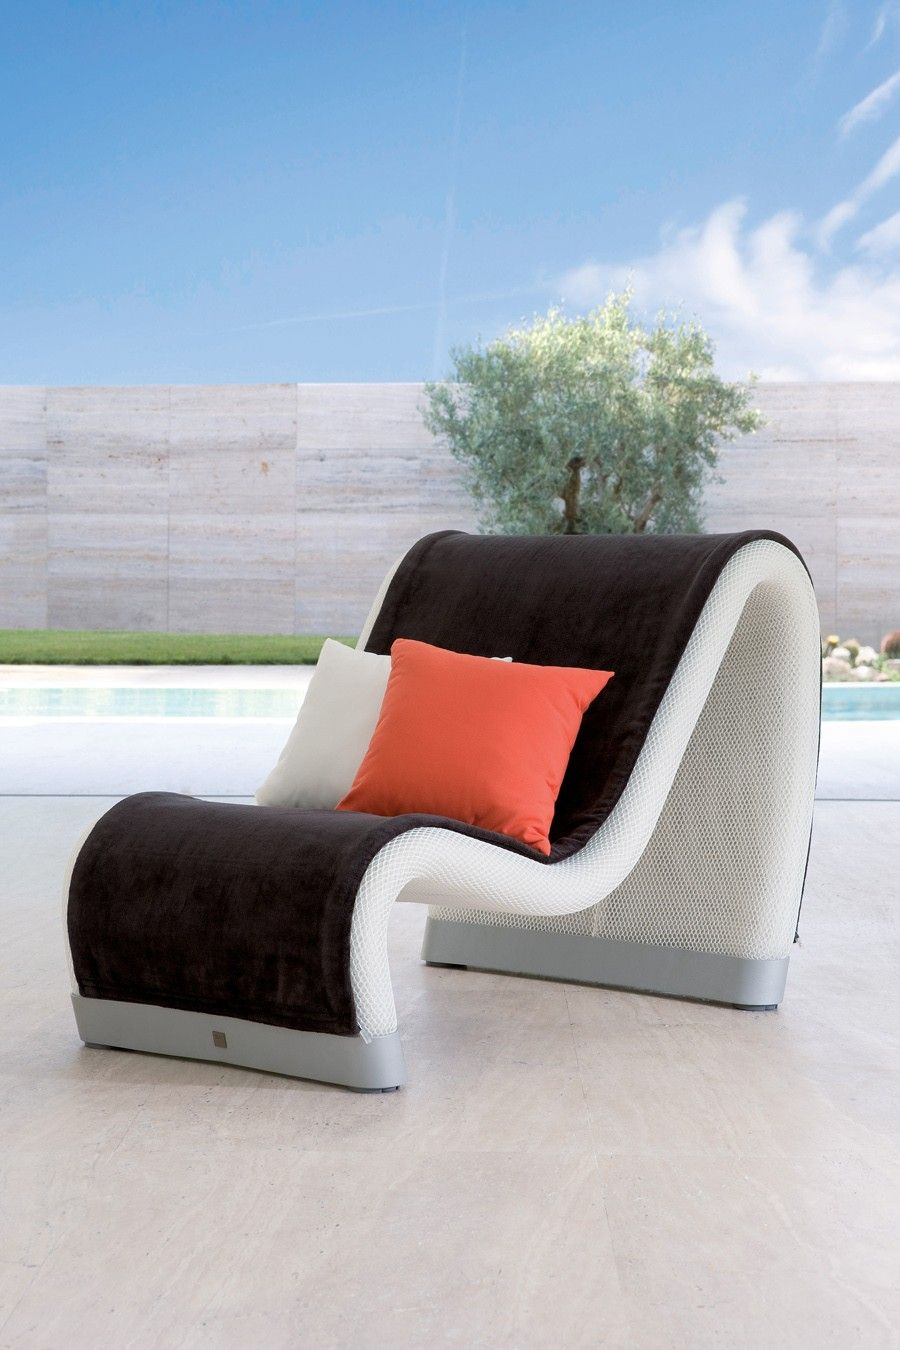 sifas outdoor furniture. Sifas, The Well-known French Manufacturer Of High Quality, Contemporary Outdoor Furniture Collections For Pool Sides, Patios, And Yachts, Sifas E